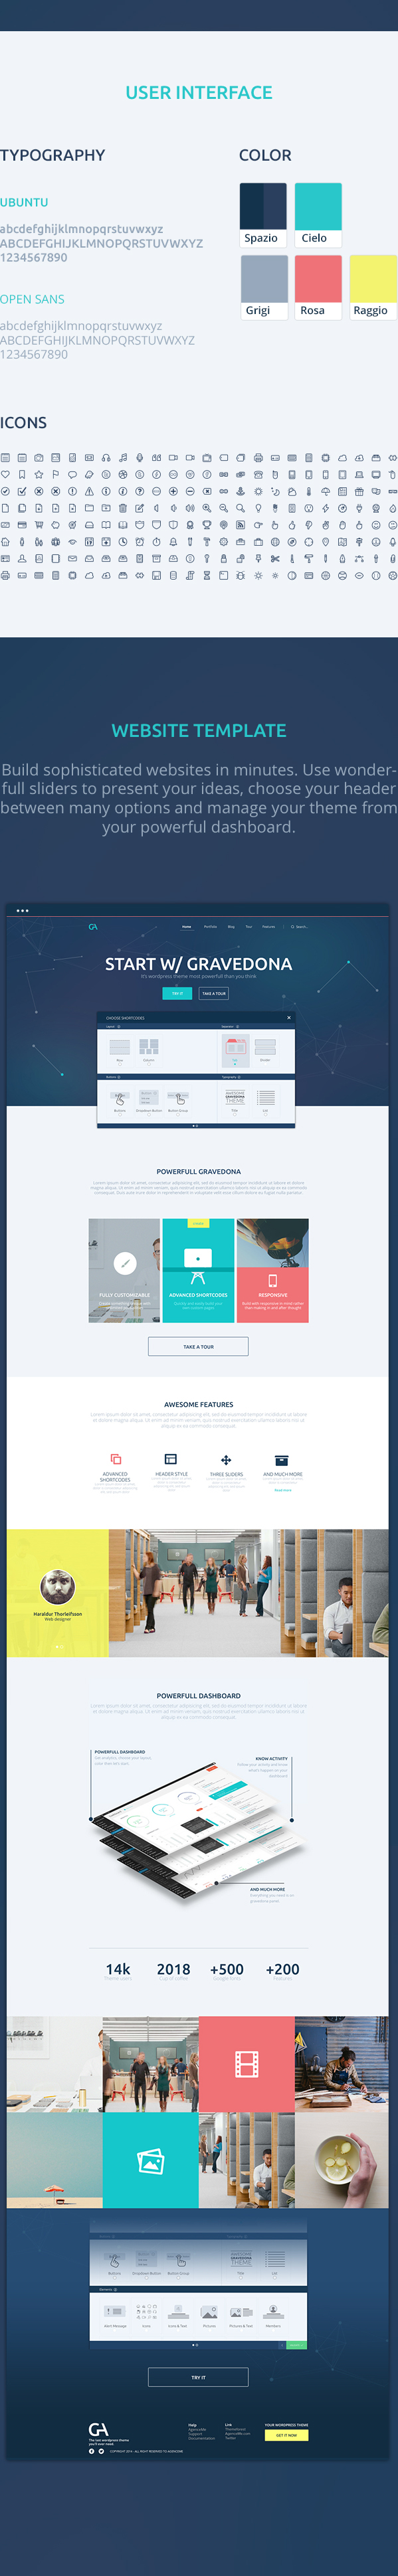 UI/UX Works by Barthelemy Chalvet